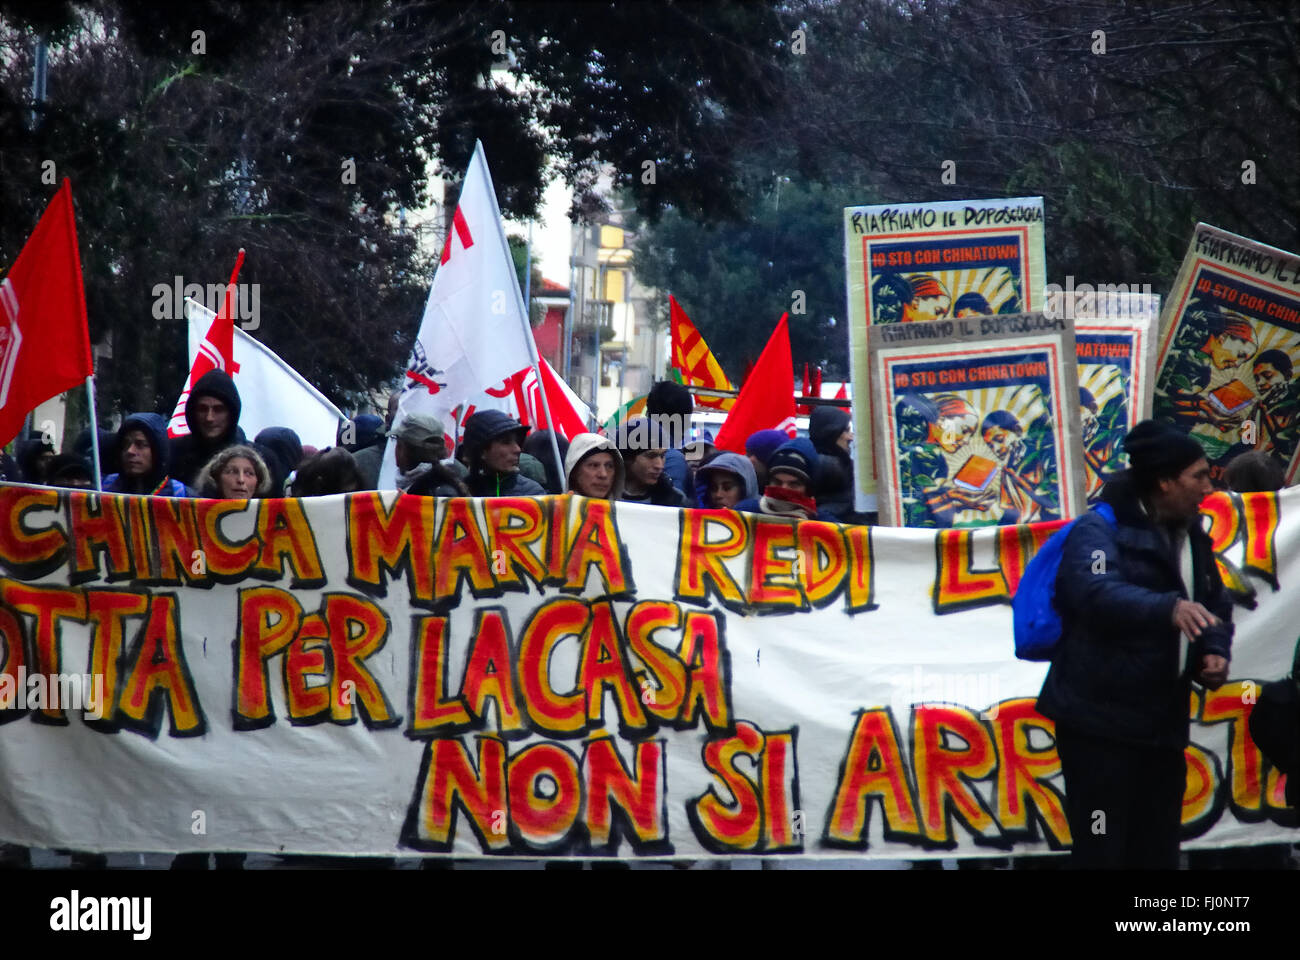 Padua, Italy, February 27th, 2016. Demonstration for council housing. Hundreds of people march against evictions, - Stock Image